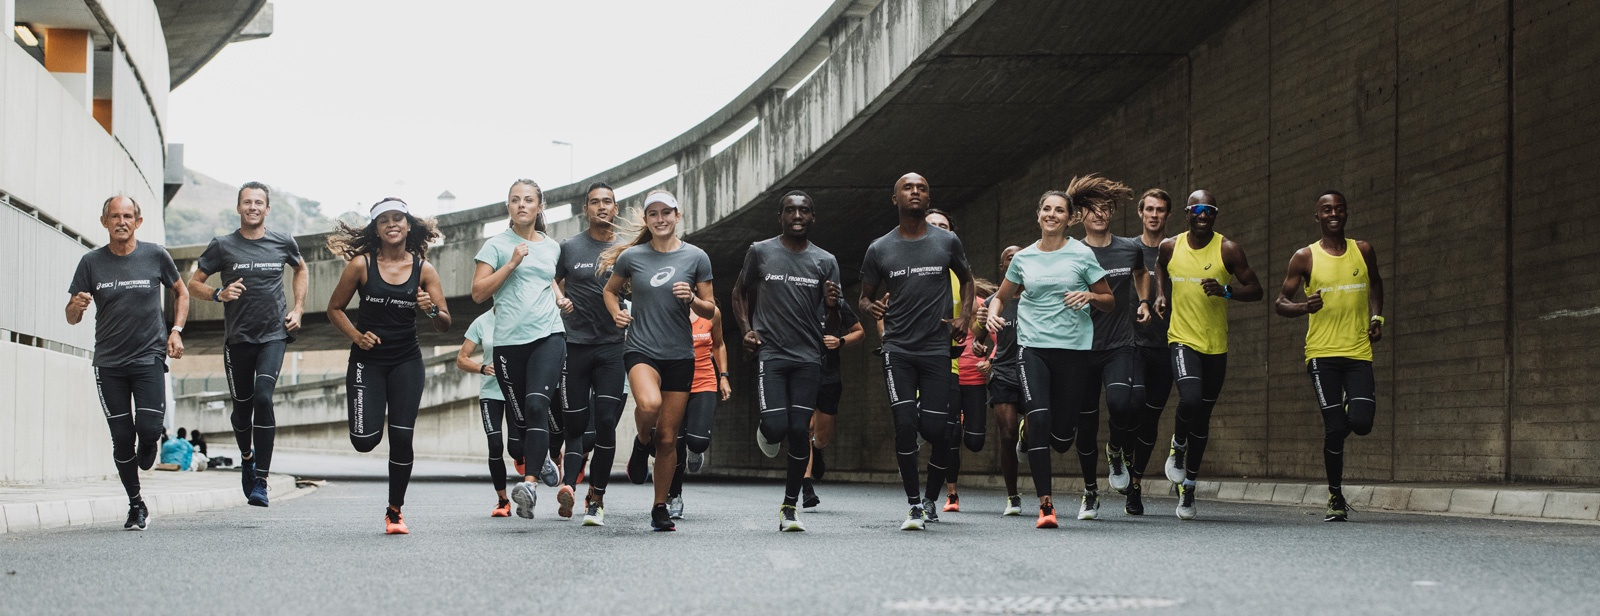 ASICS South Africa | Official Running Shoes & Clothing